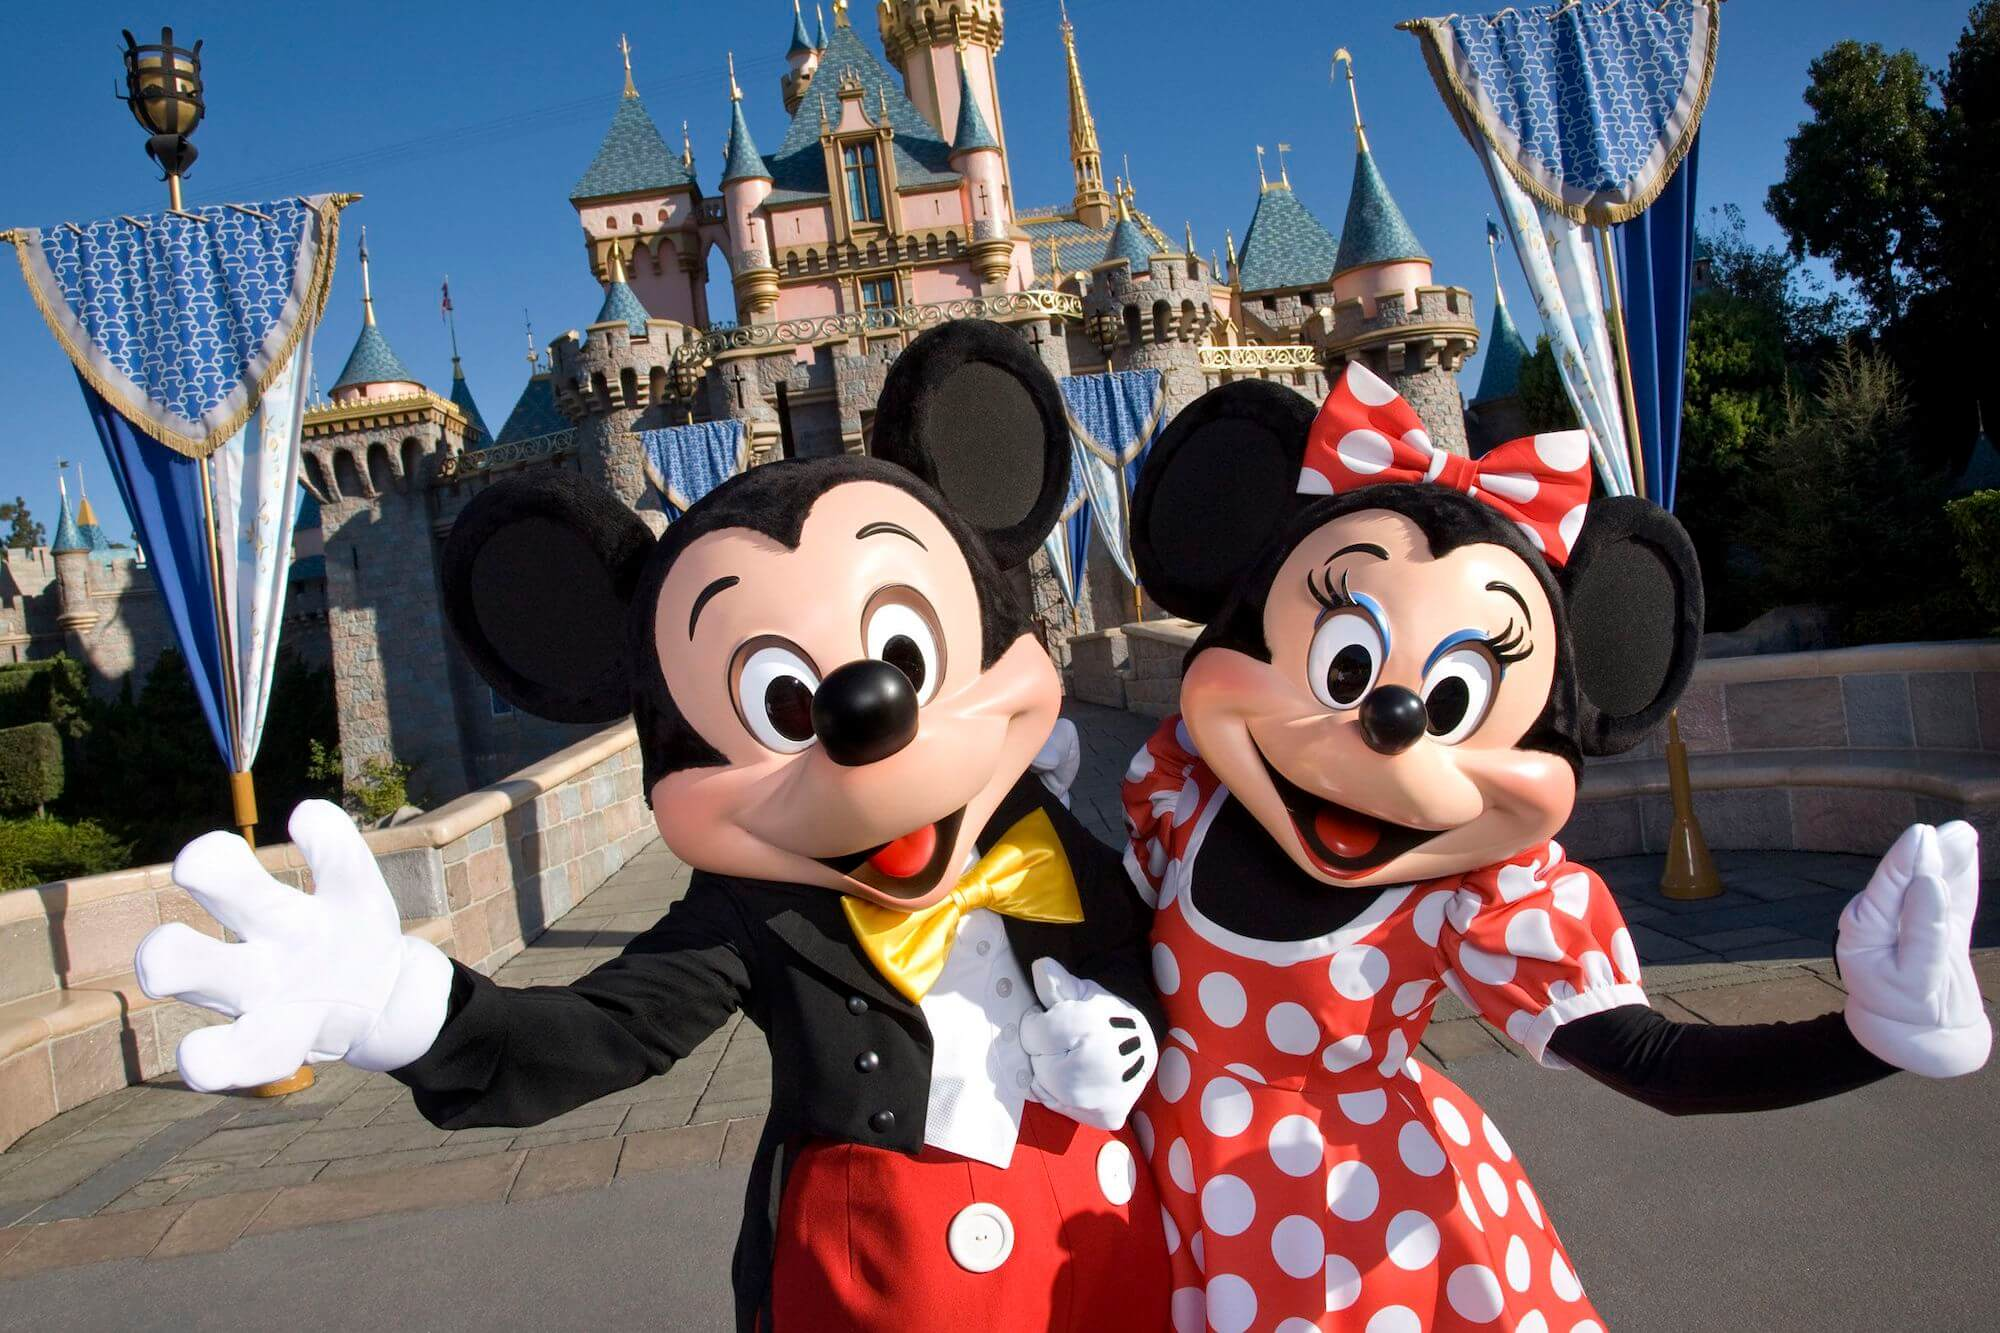 Disneyland Mickey & Minnie